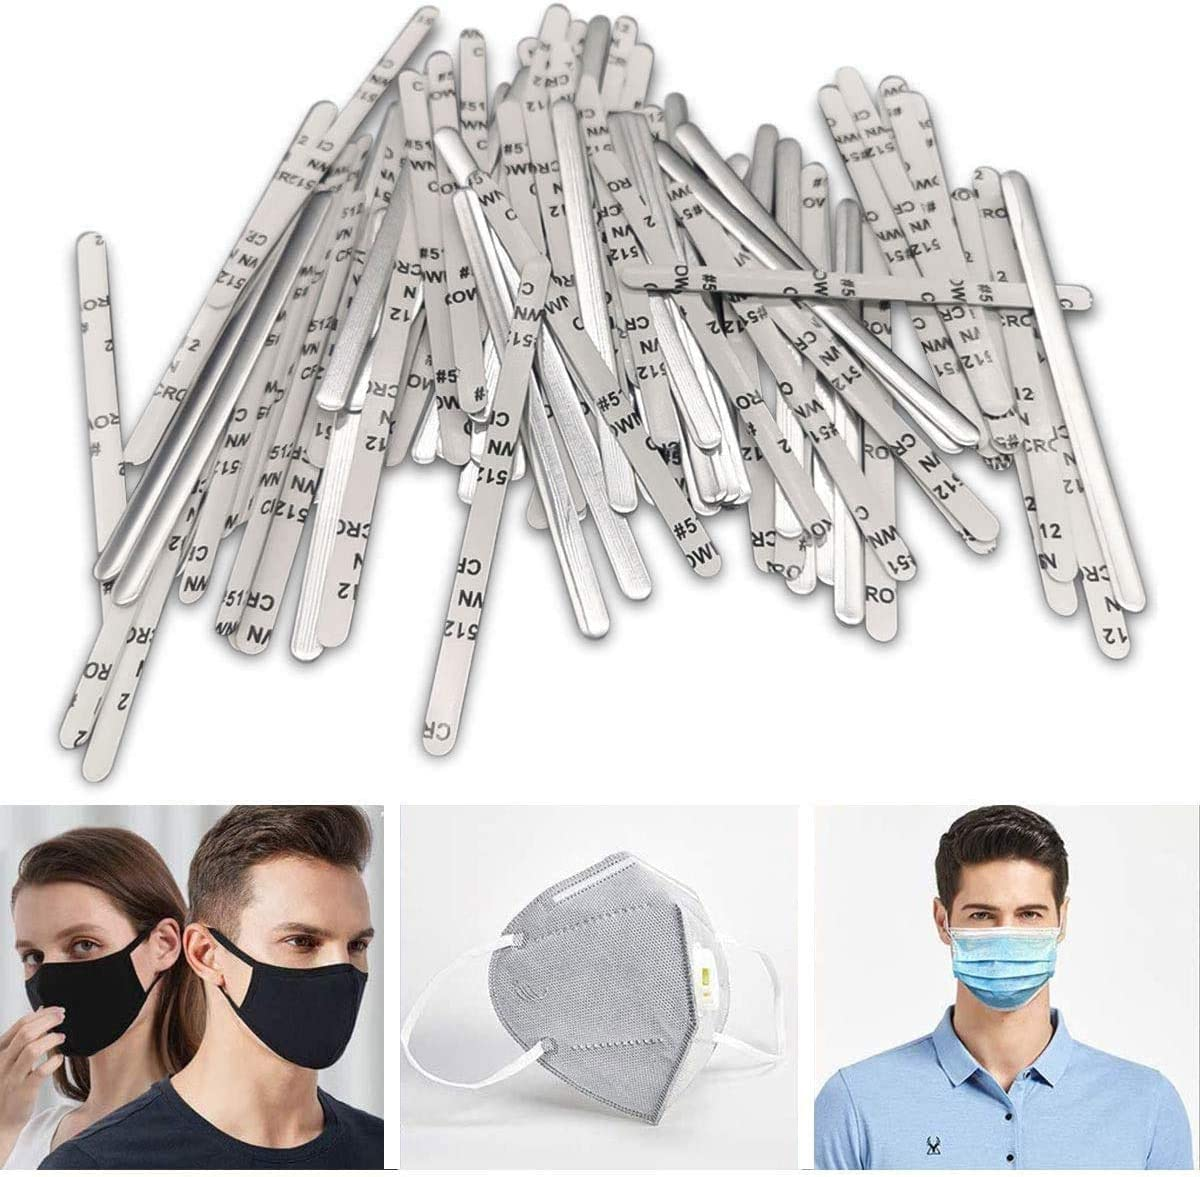 HICITY Nose Bridge Strips for Mask